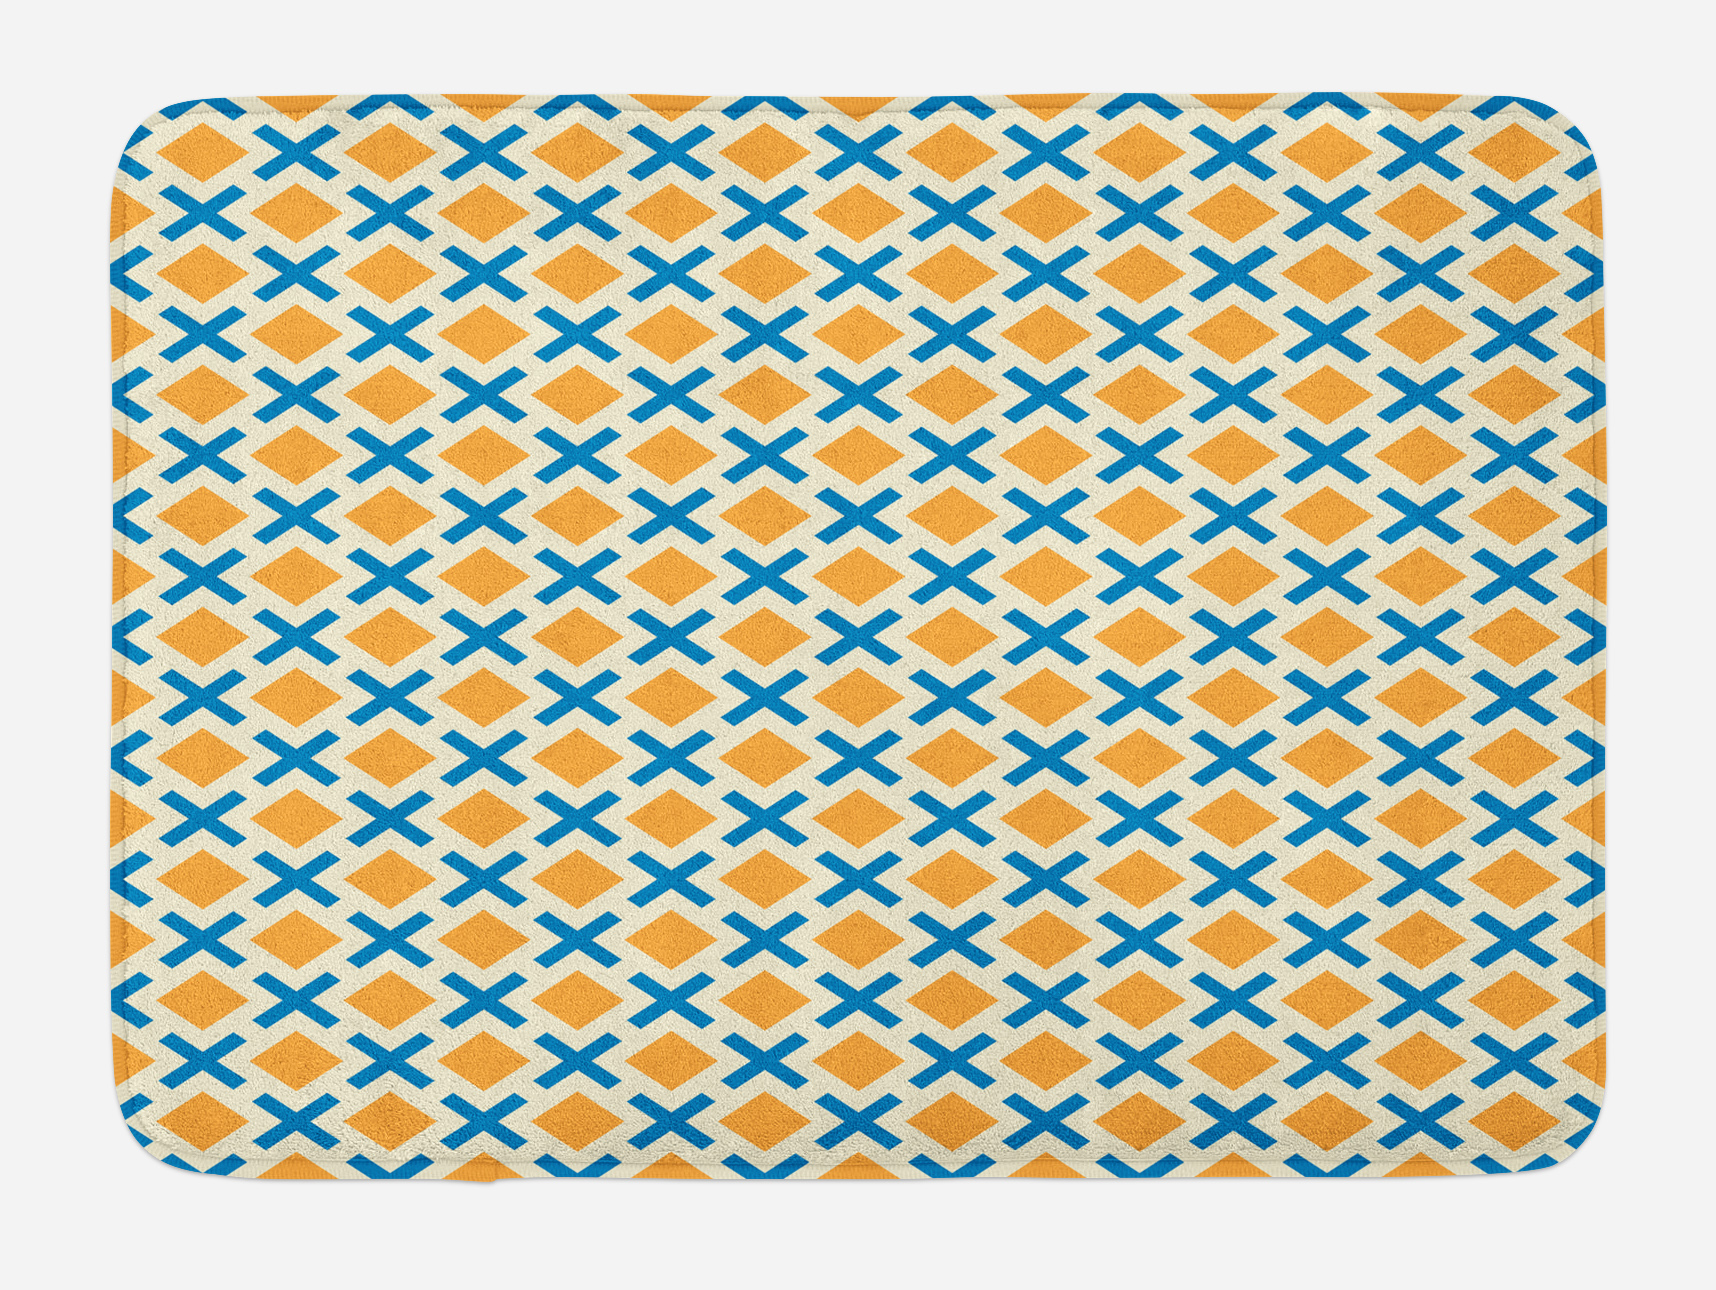 Kids Bath Mat, Checked Pattern with Dashed Lines and Squares Diagonal Geometrical Retro... by 3decor llc